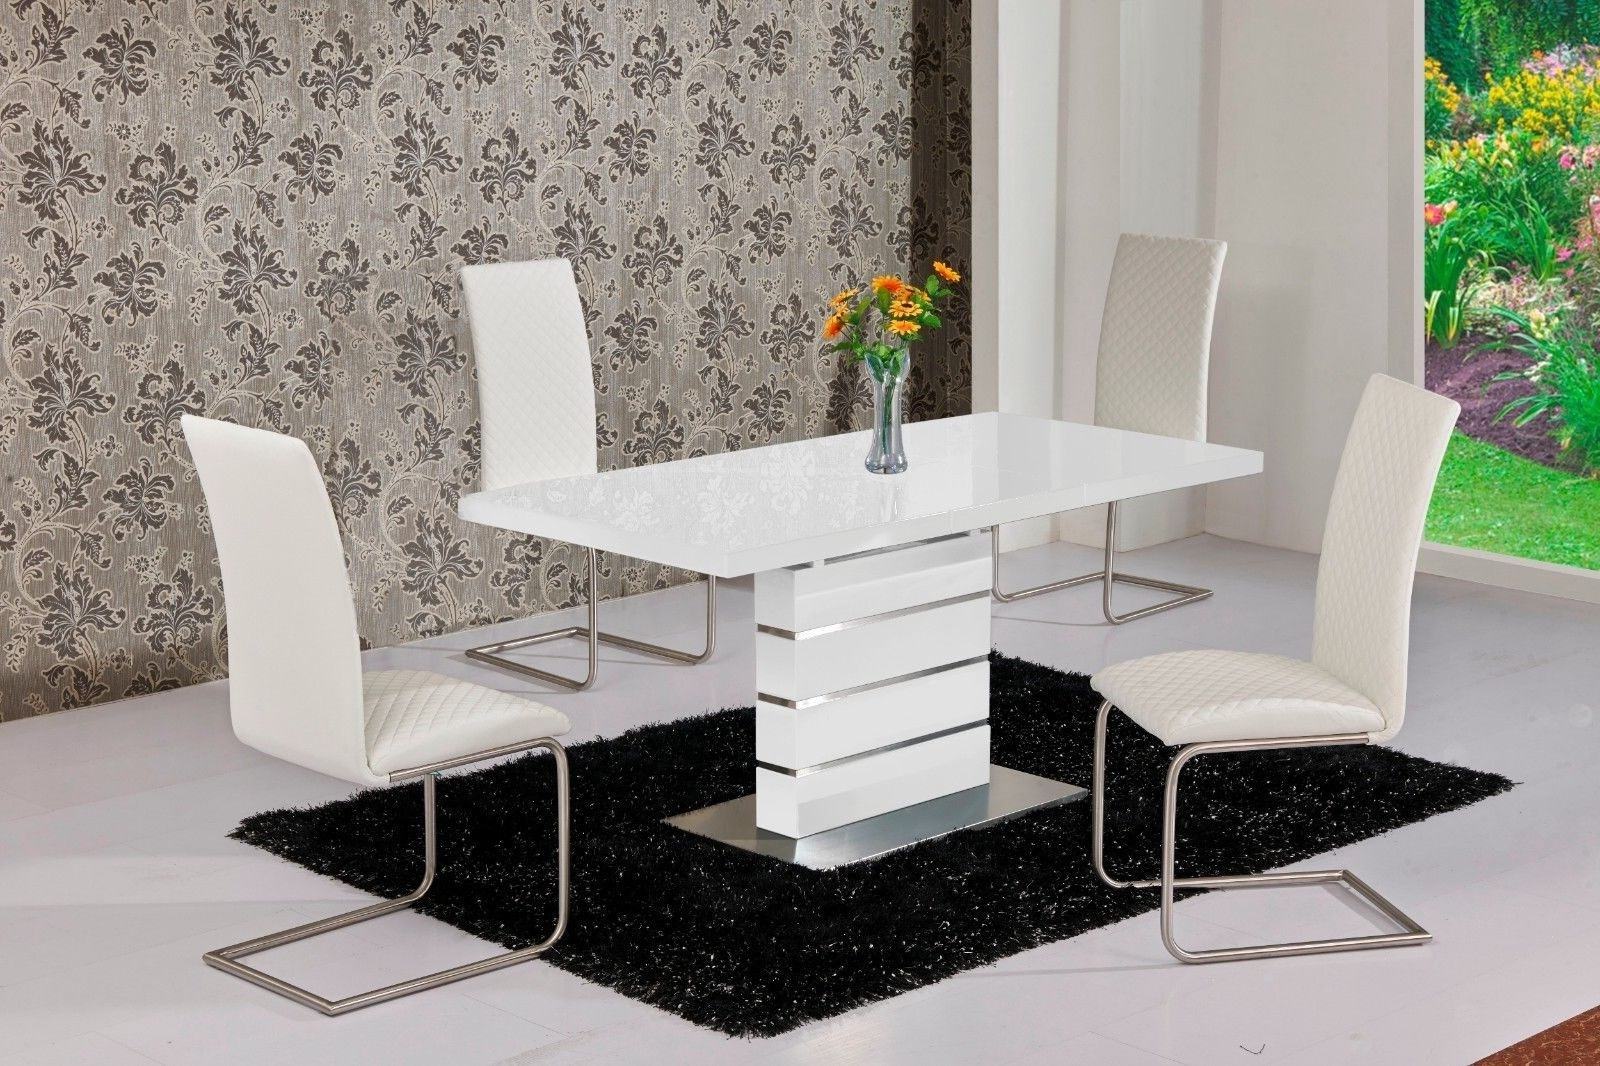 Mace High Gloss Extending 120 160 Dining Table & Chair Set – White Throughout 2018 Black High Gloss Dining Tables (View 23 of 25)